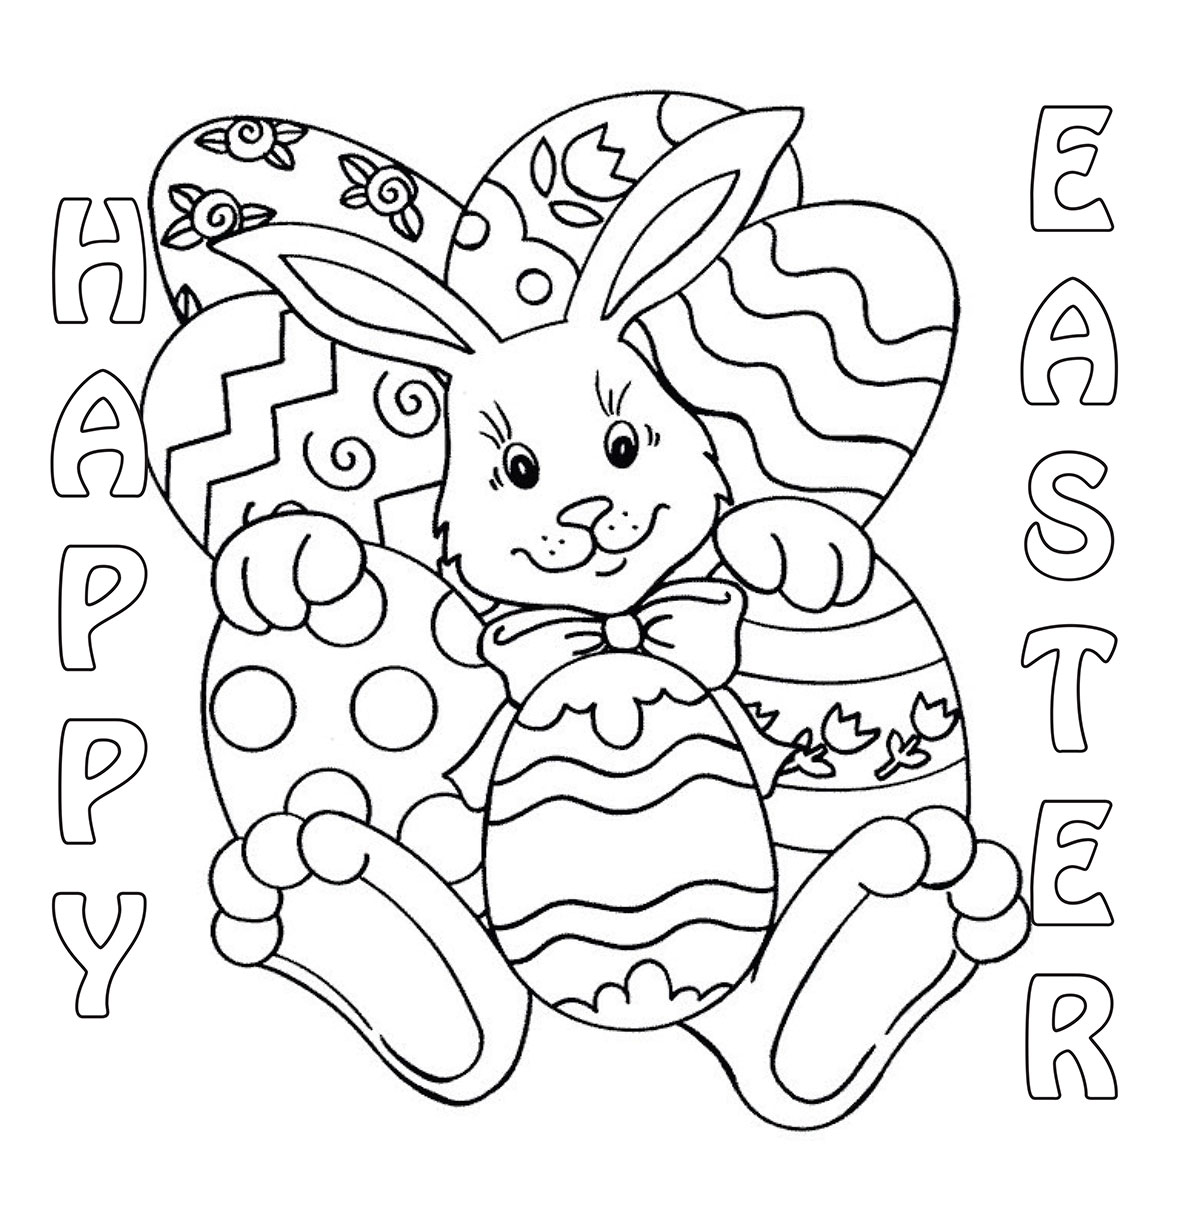 Easter coloring contest 2014 cedar springs post newspaper for Free easter coloring page